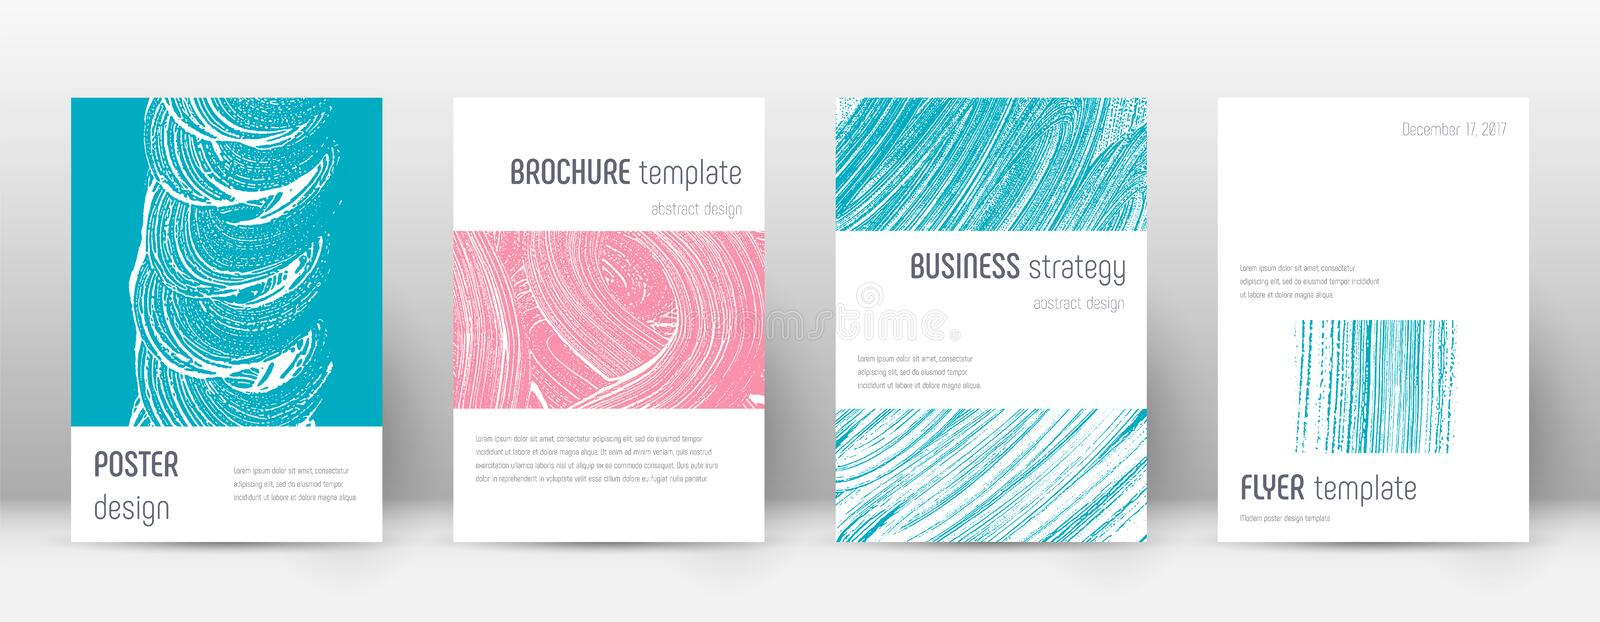 Cover page design template. Minimalistic brochure. Layout. Classy trendy abstract cover page. Pink and blue grunge texture background. Emotional poster stock illustration